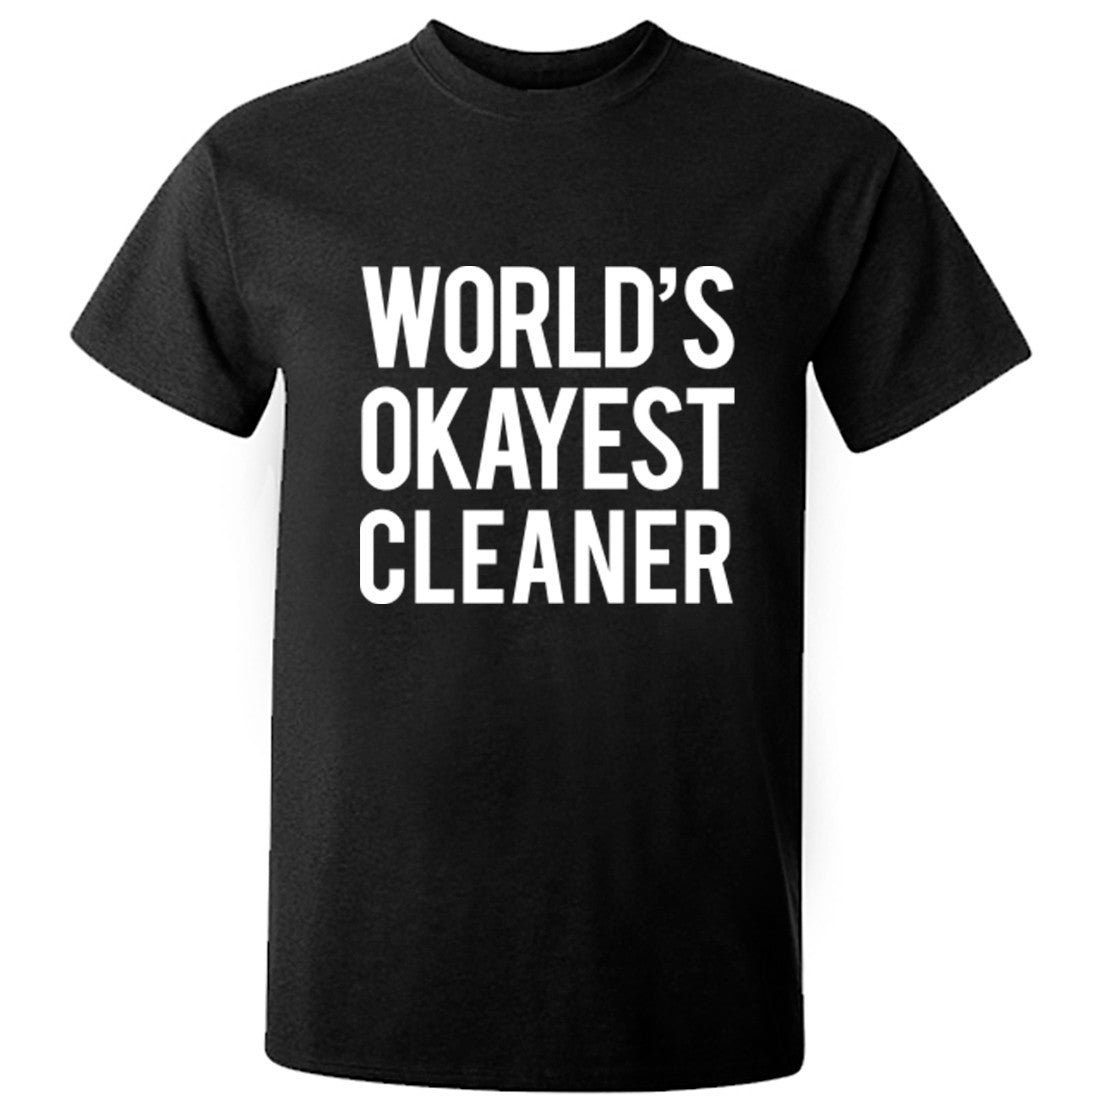 Worlds Okayest Cleaner Unisex Fit T-Shirt K0487 - Illustrated Identity Ltd.